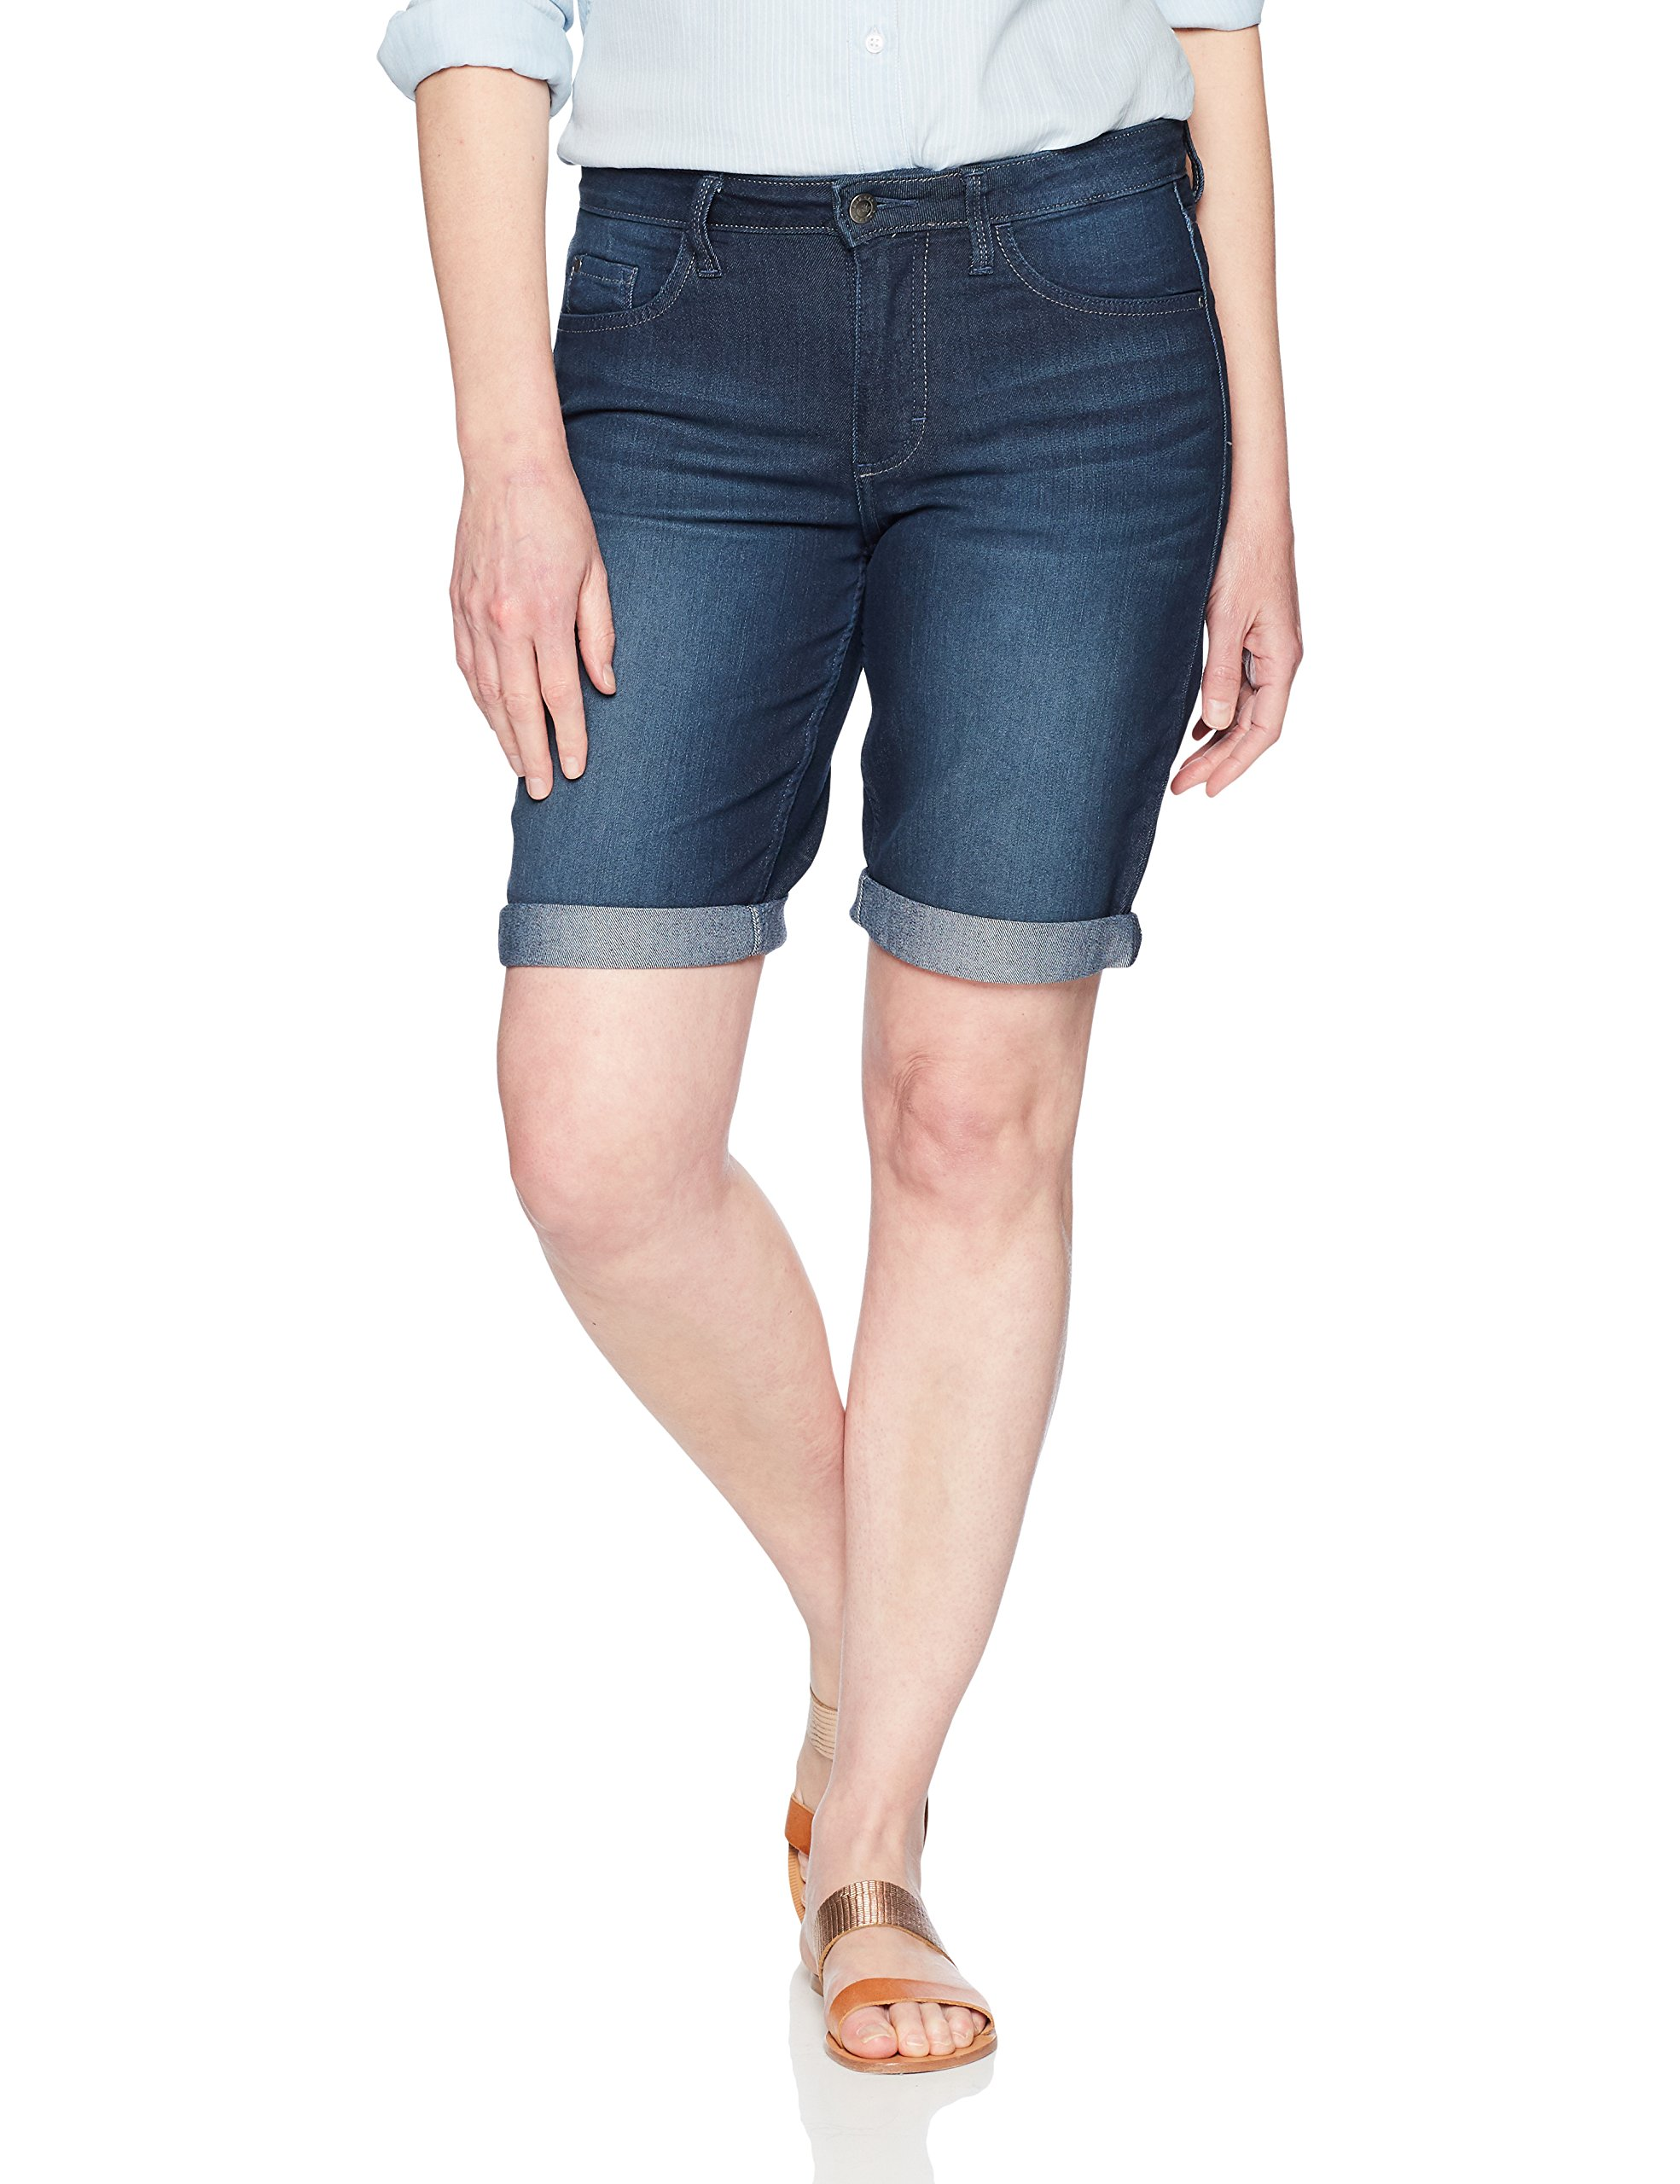 Riders by Lee Indigo Women's Rolled Cuff Midrise Denim Bermuda Short with 10'' Inseam, Dark Wash, 14 AVG